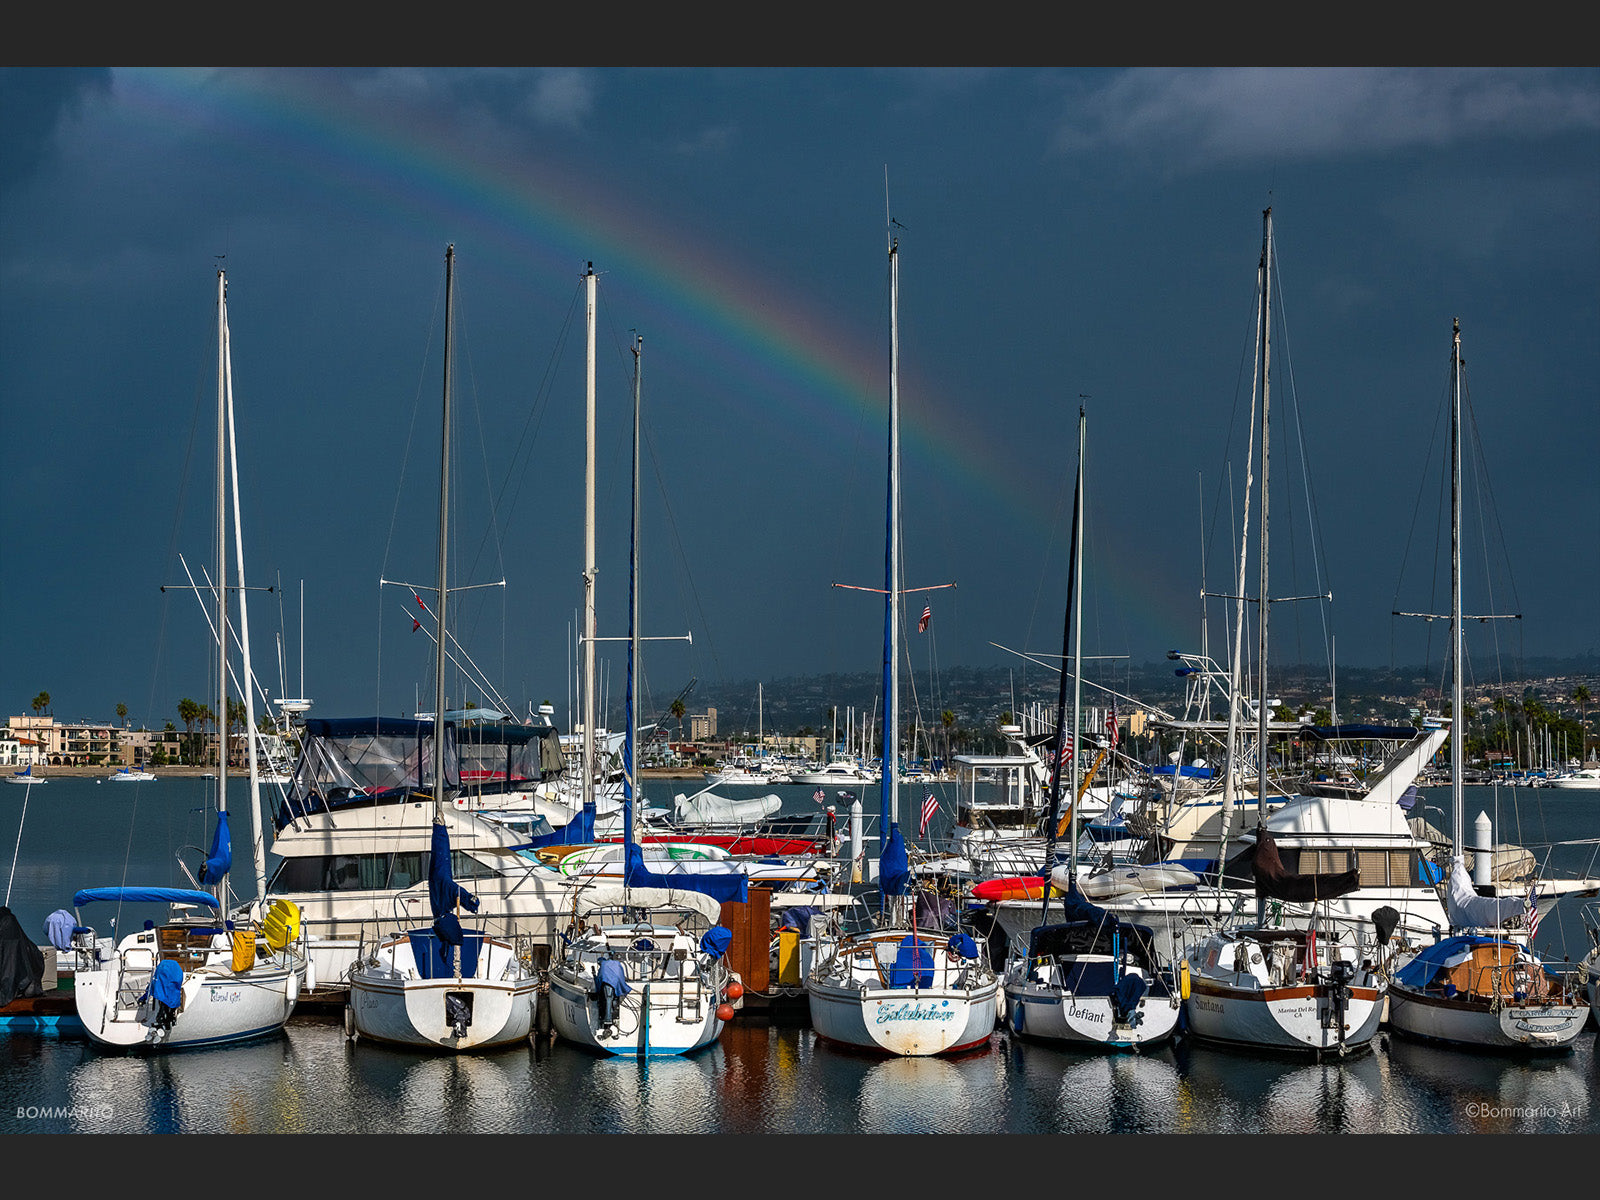 Mission Bay Rainbow